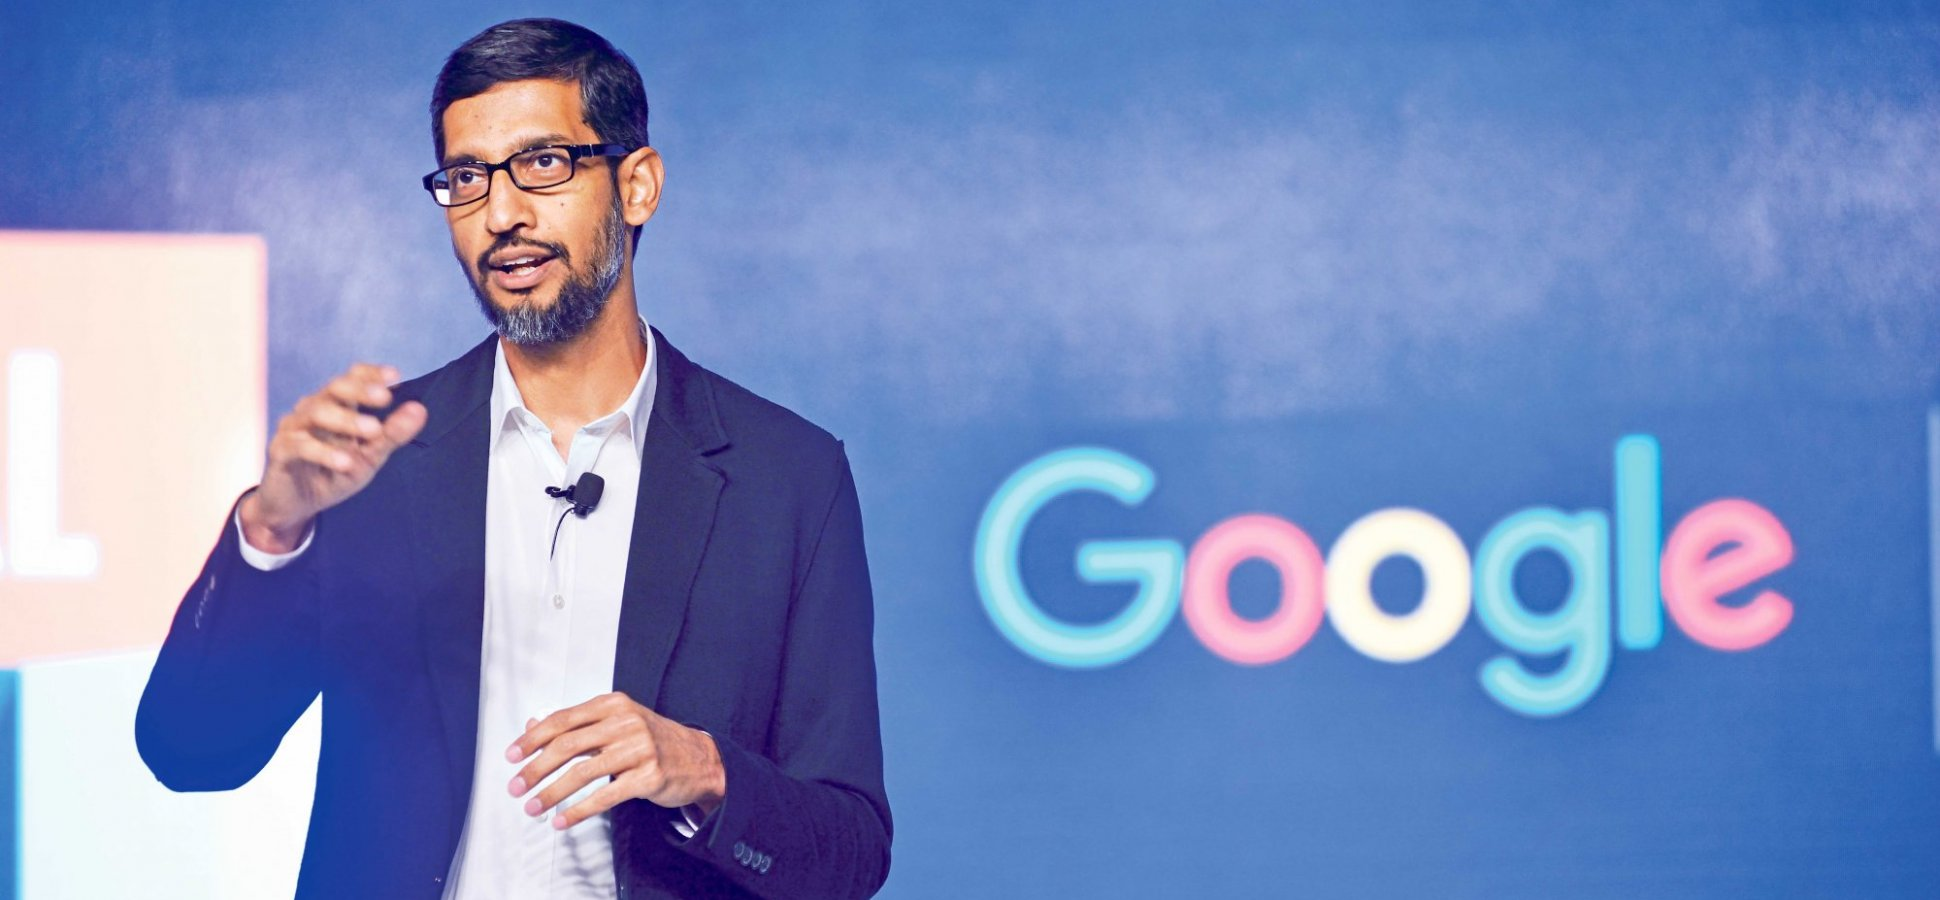 Google CEO's Response to This Tricky Question Was a Critical Interviewing Lesson For All